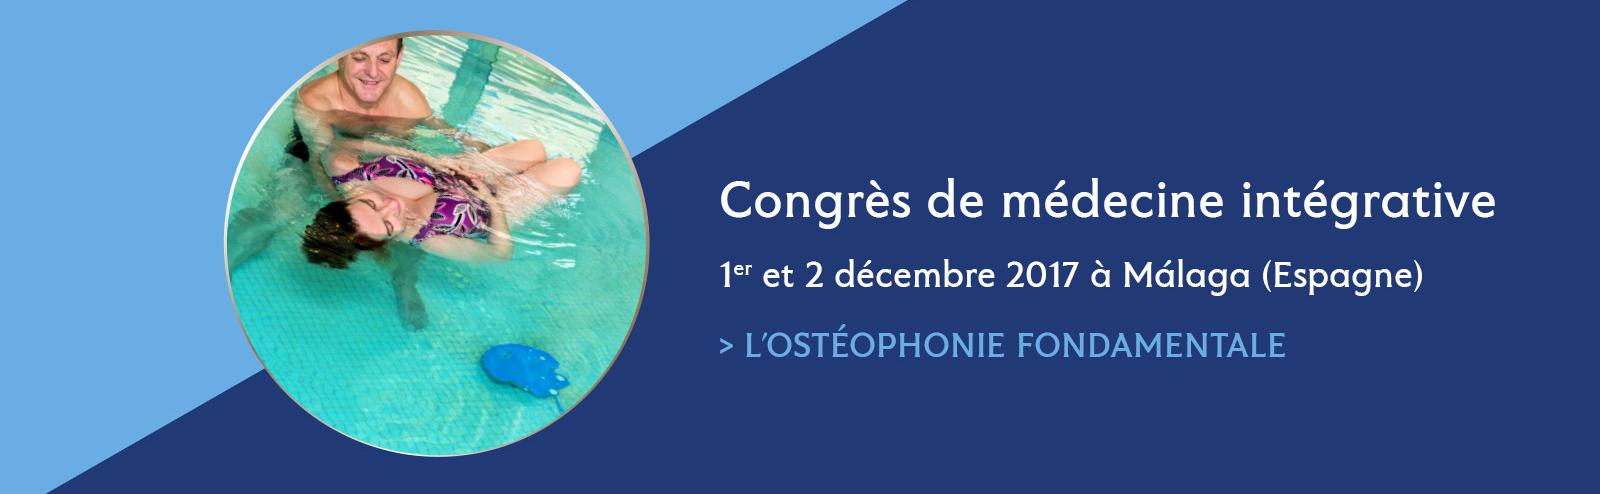 congres medecine integrative